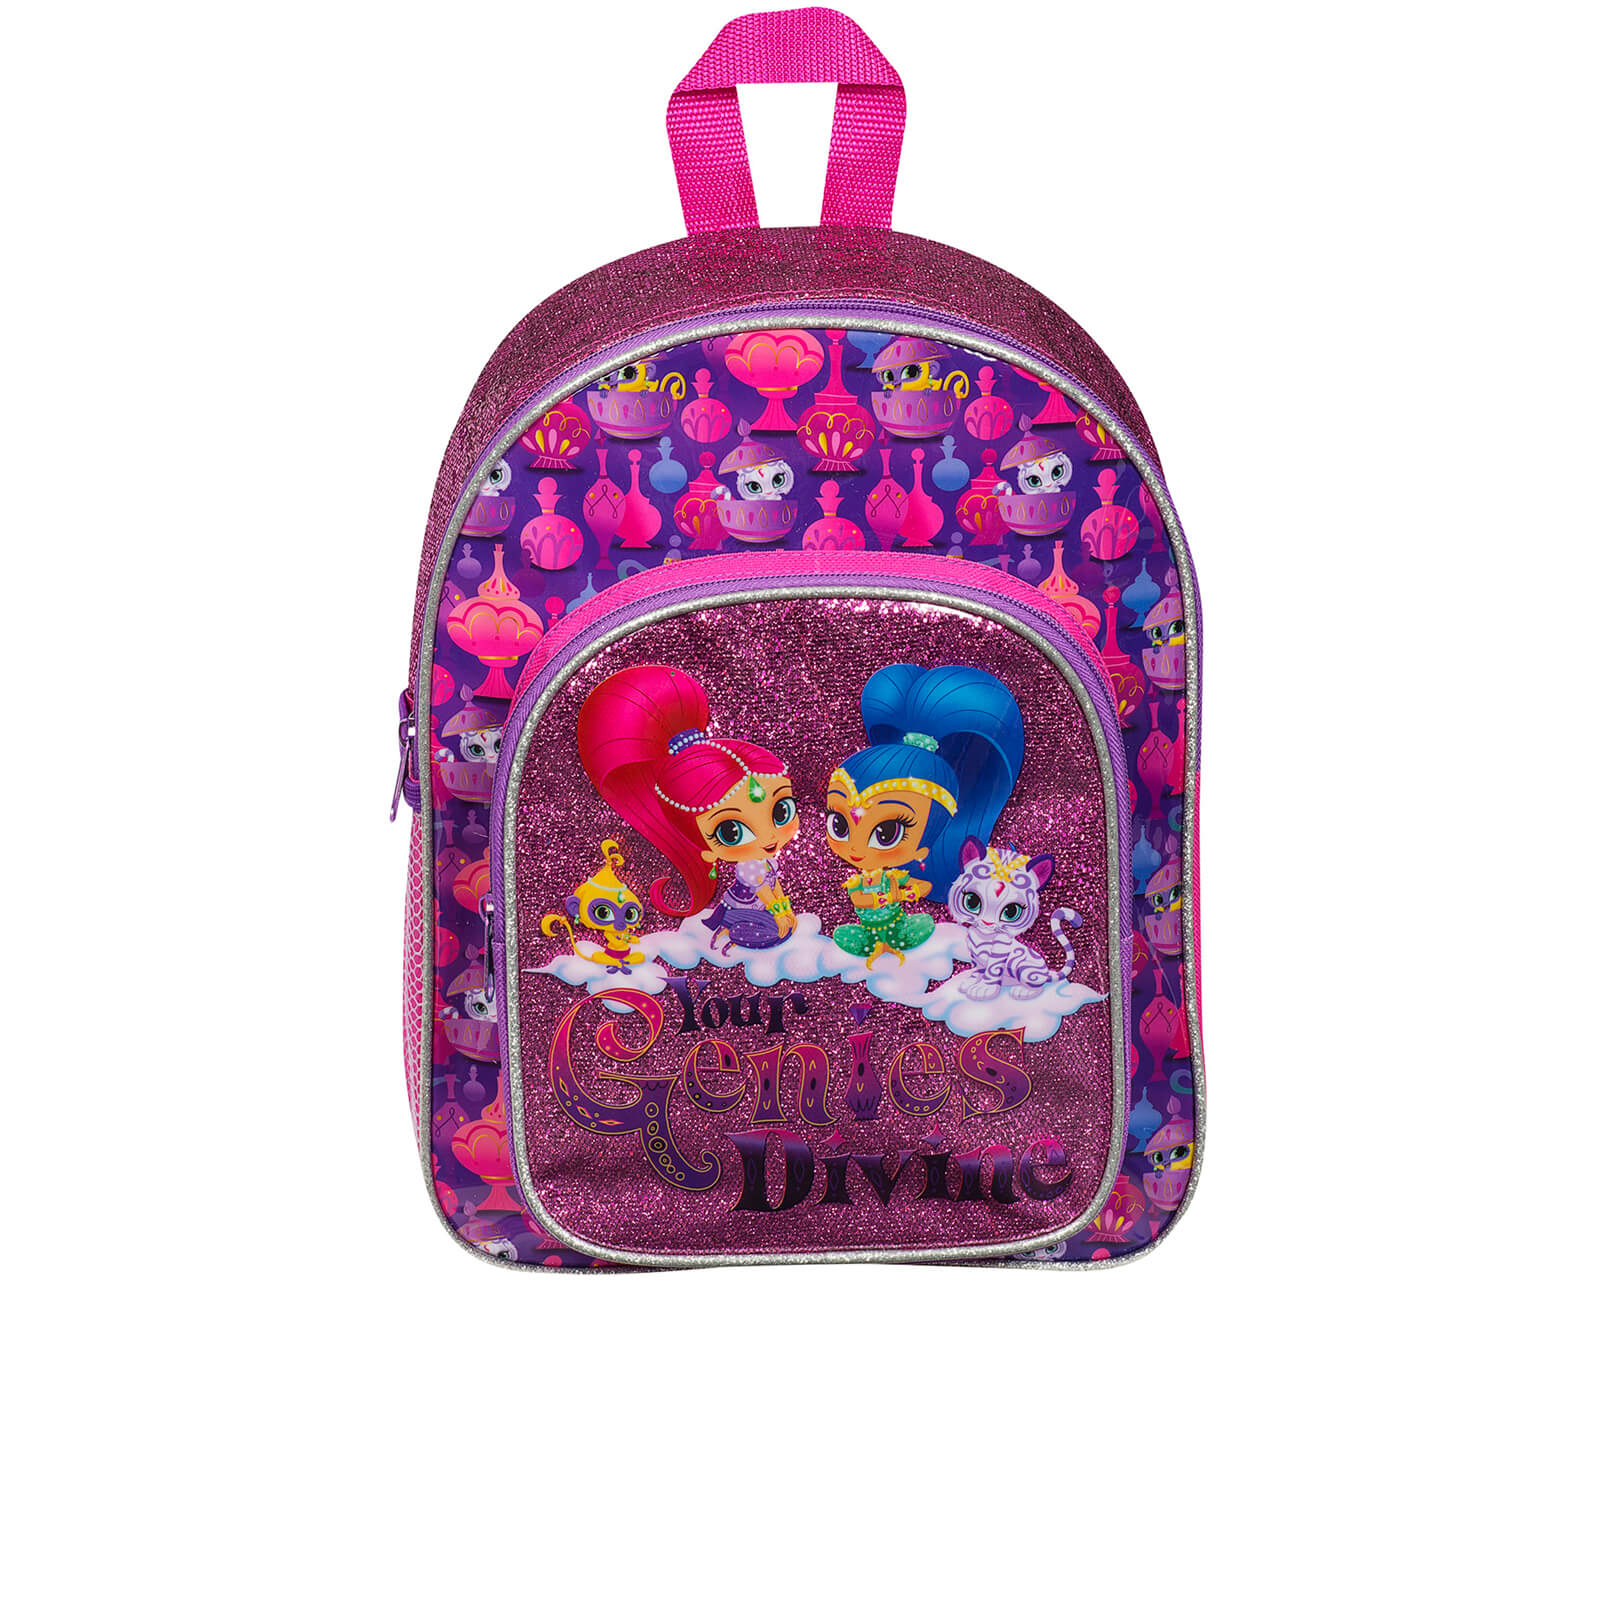 Nickelodeon Shimmer and Shine Glitter Backpack - Purple